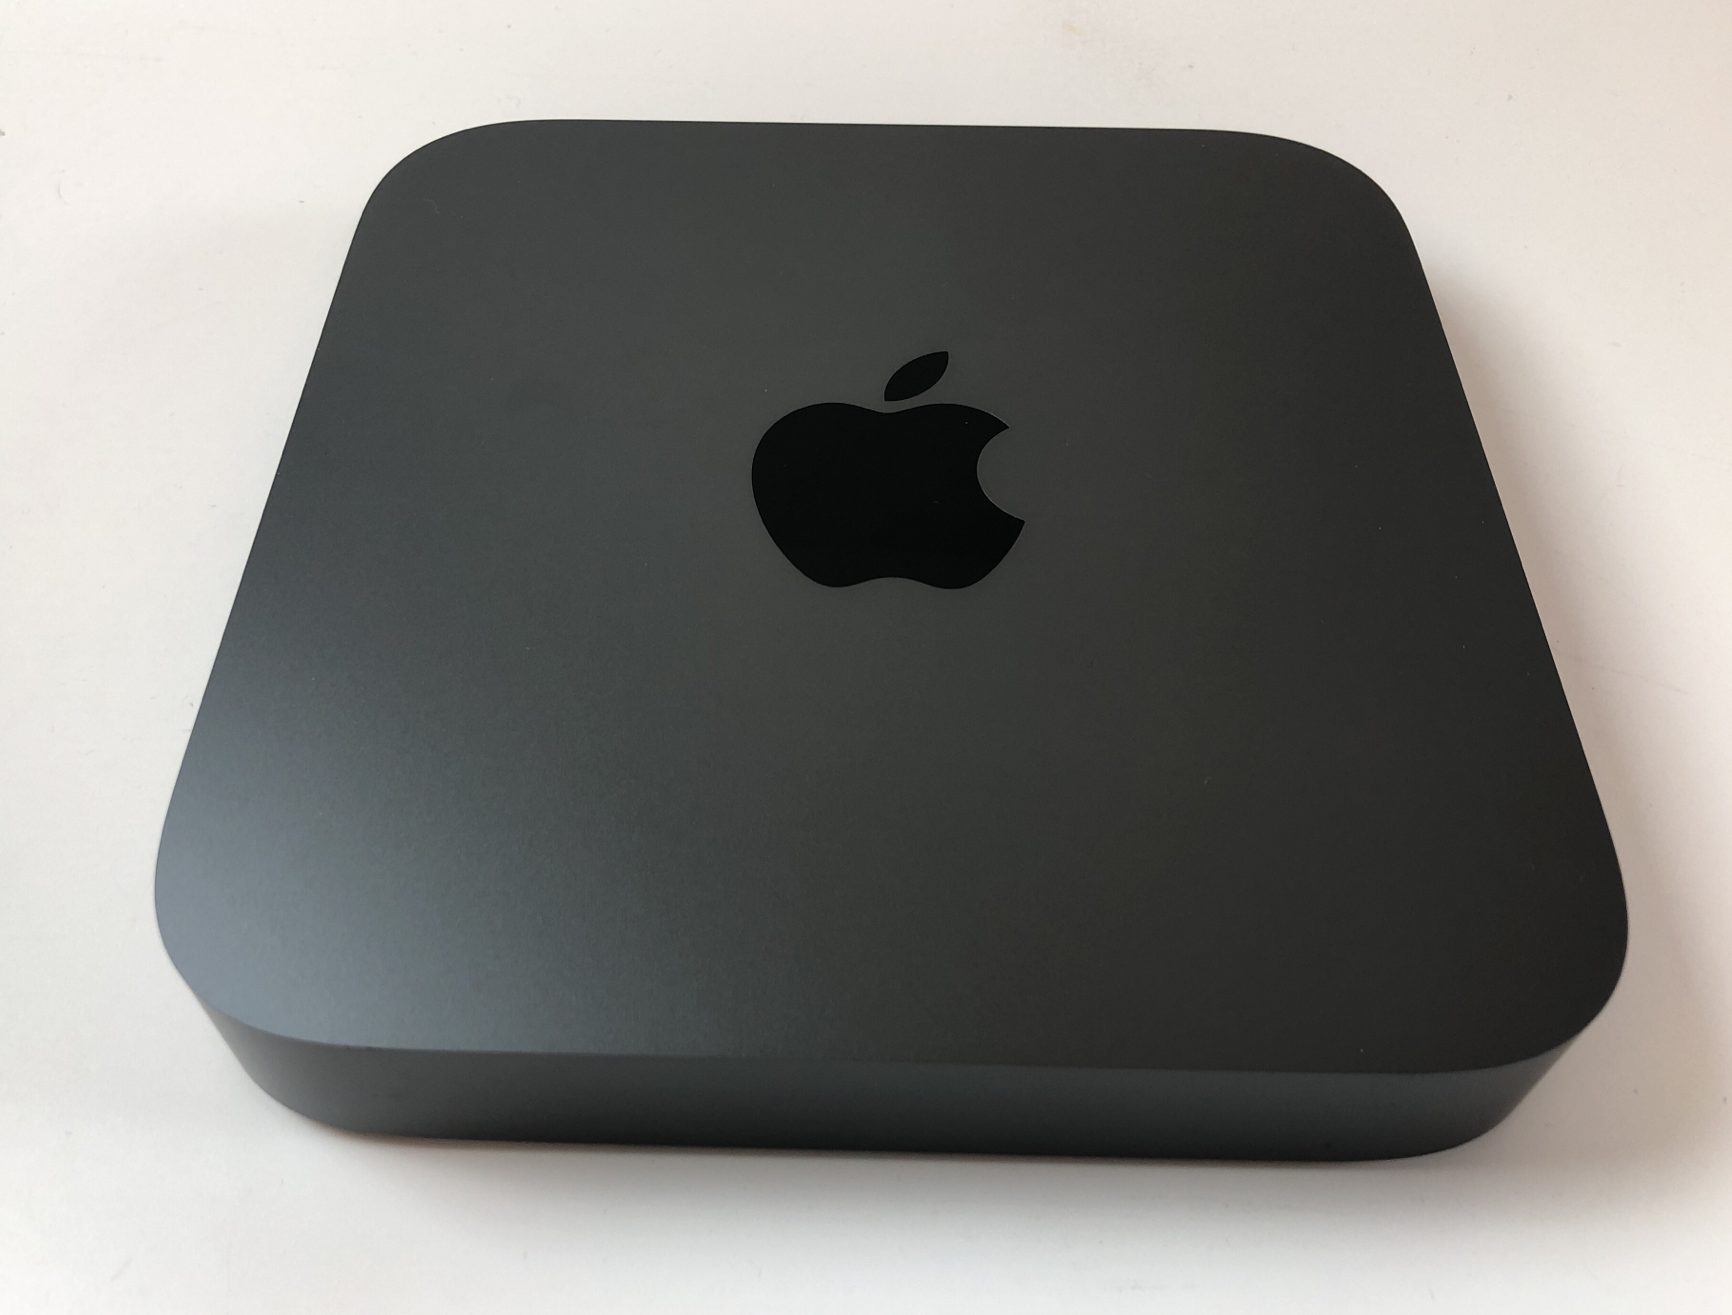 Mac Mini Late 2018 (Intel Quad-Core i3 3.6 GHz 8 GB RAM 128 GB SSD), Intel Quad-Core i3 3.6 GHz, 8 GB RAM, 128 GB SSD, imagen 1